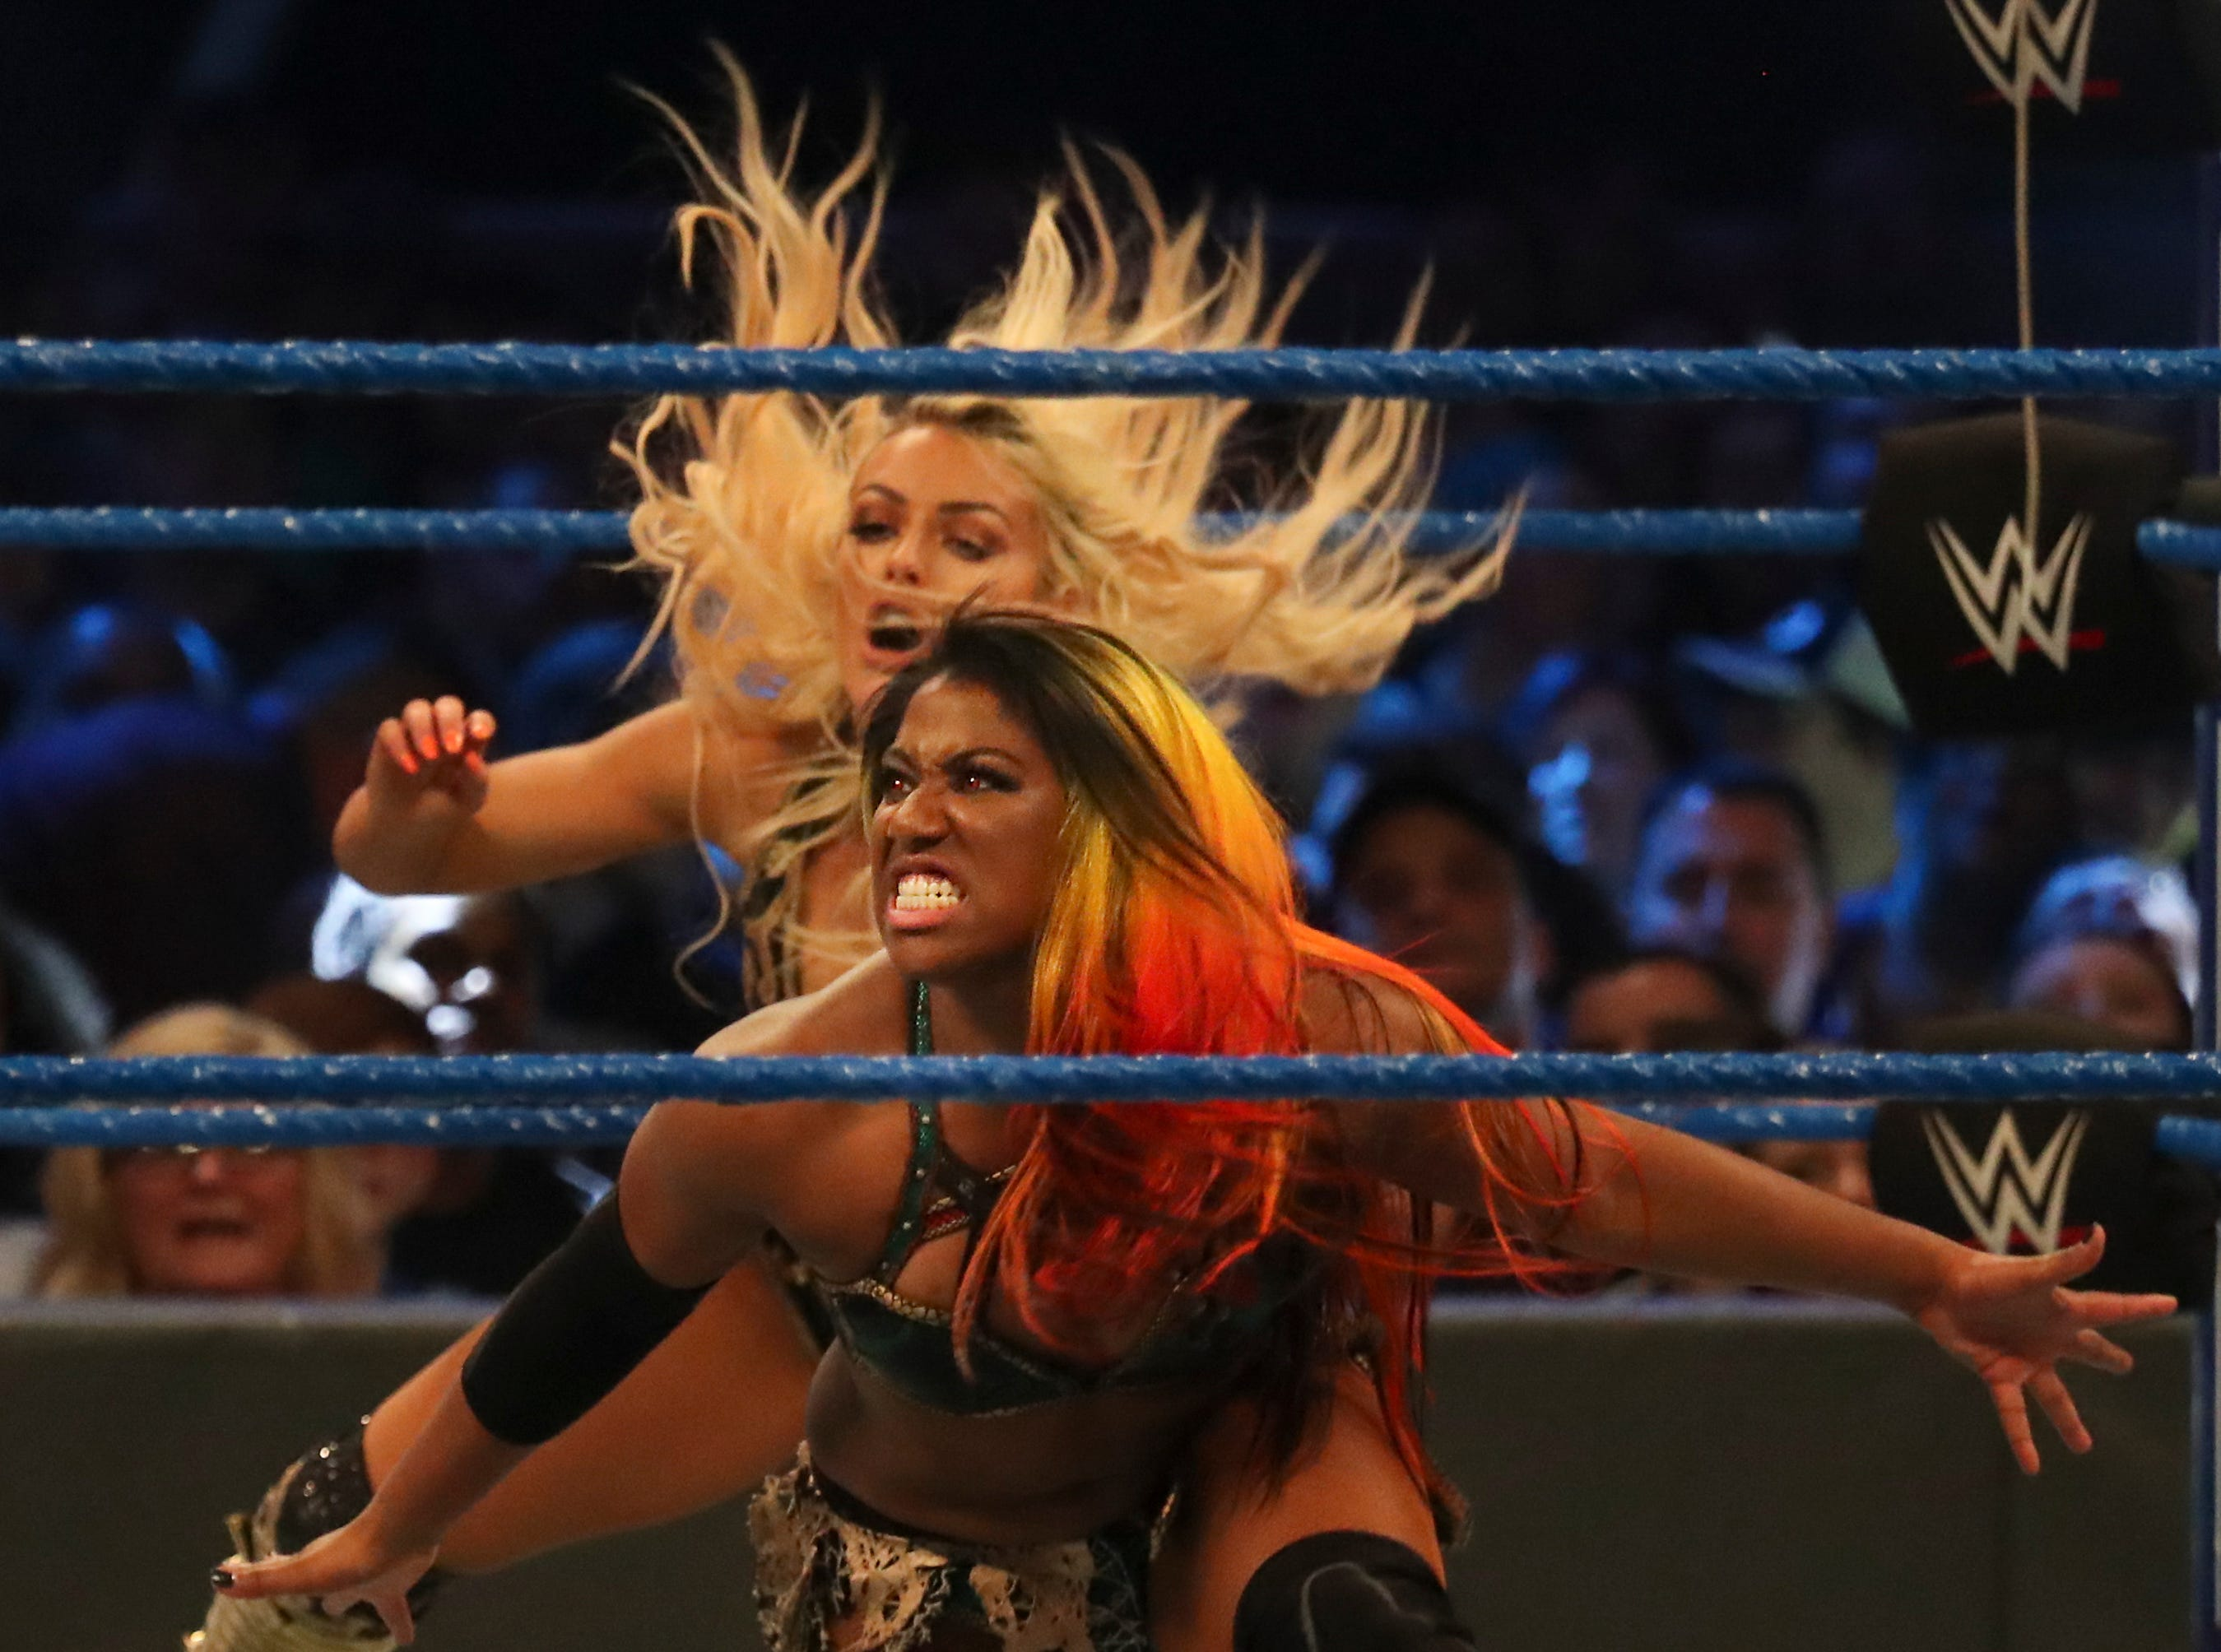 Ember Moon and Carmella take on Mandy Rose and Sonya Deville during WWE Smackdown on May 7.